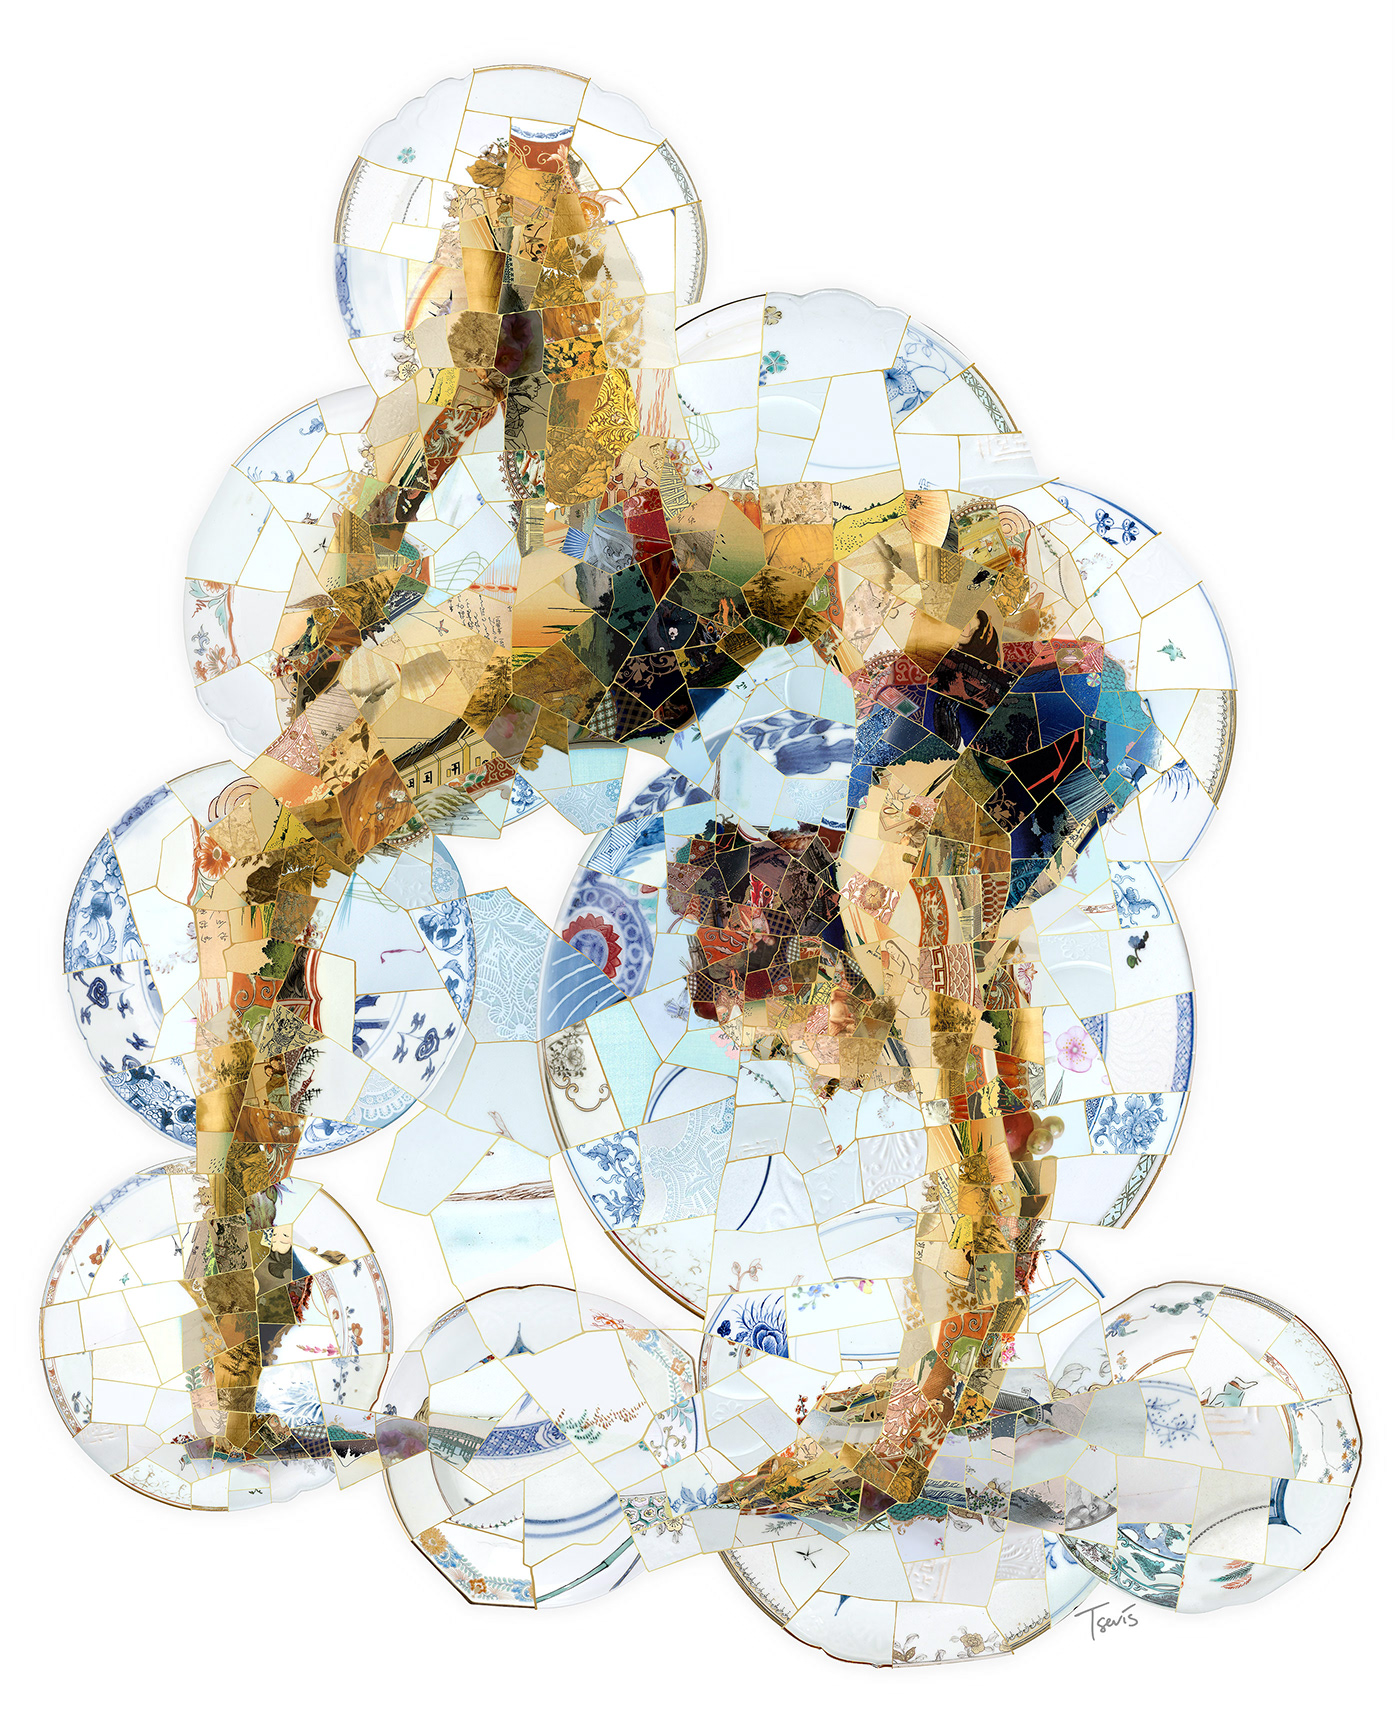 Mosaic illustration of a gymnast performing a difficult exercize. Created simulating Kintsugi art.